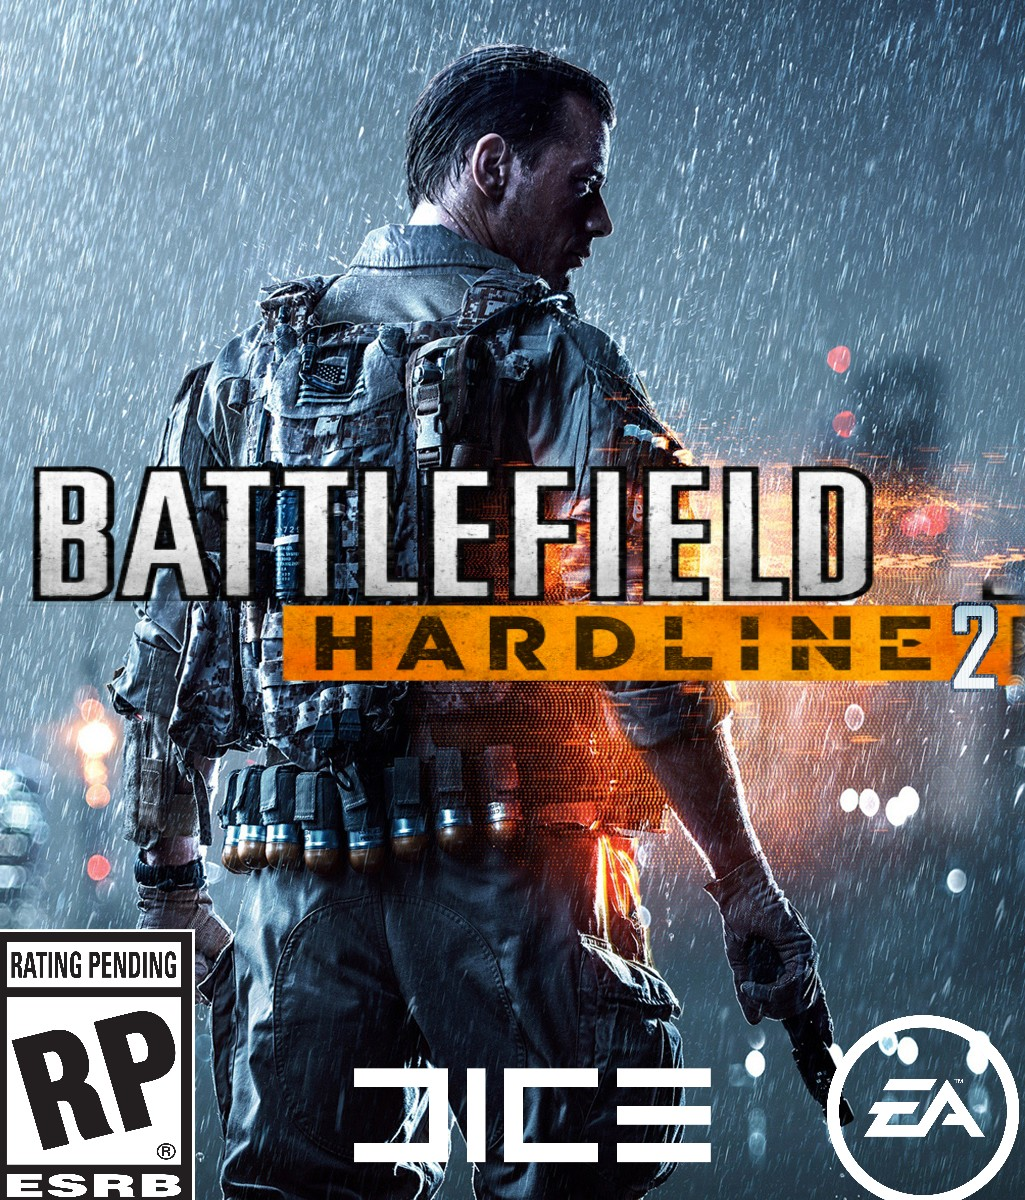 Battlefield Hardline 2 Battlefield Fan Fiction Wiki Fandom